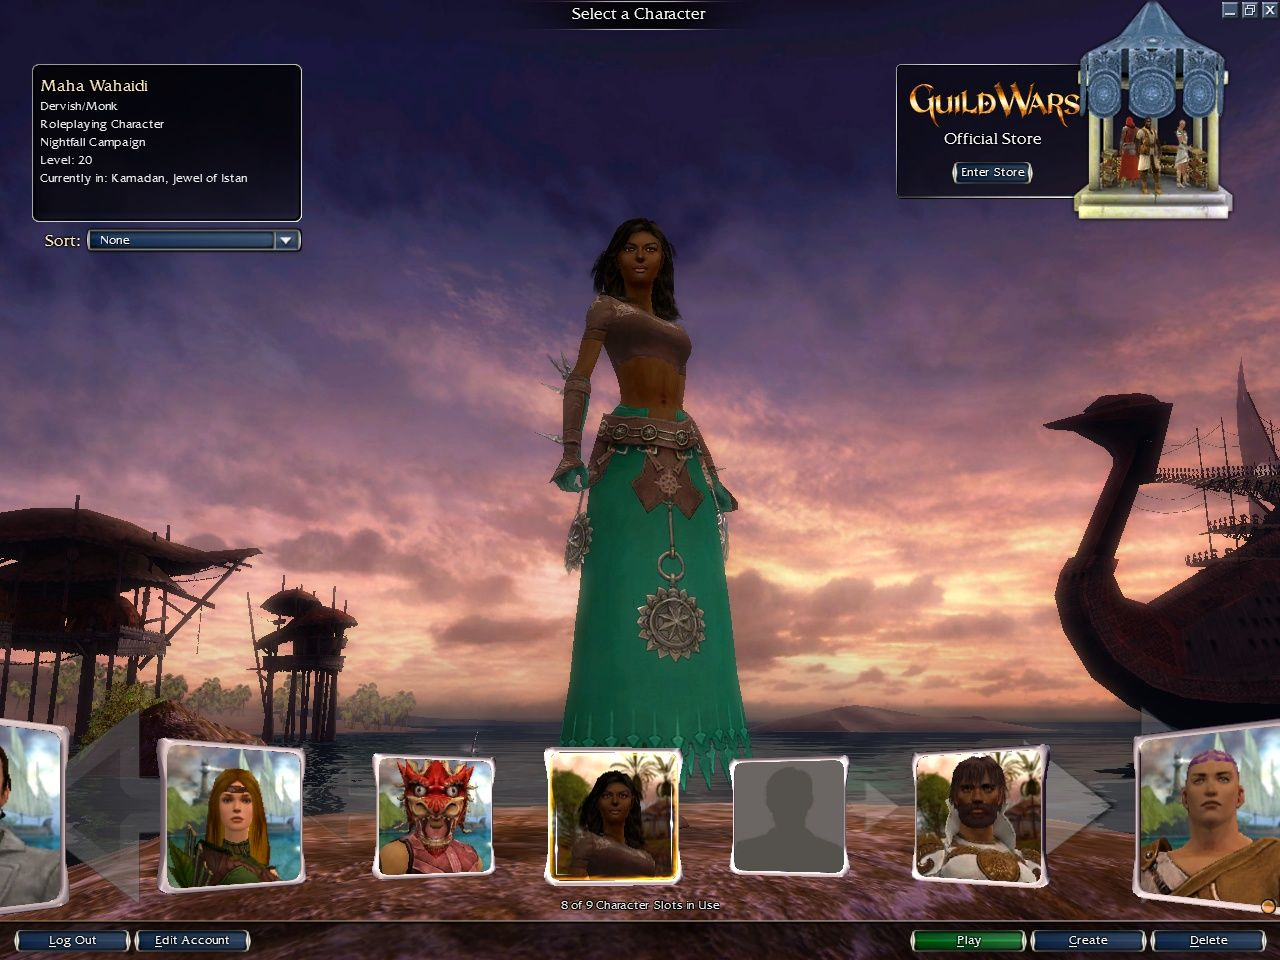 Guild Wars: Nightfall Windows New character selection screen for Guild Wars Nightfall